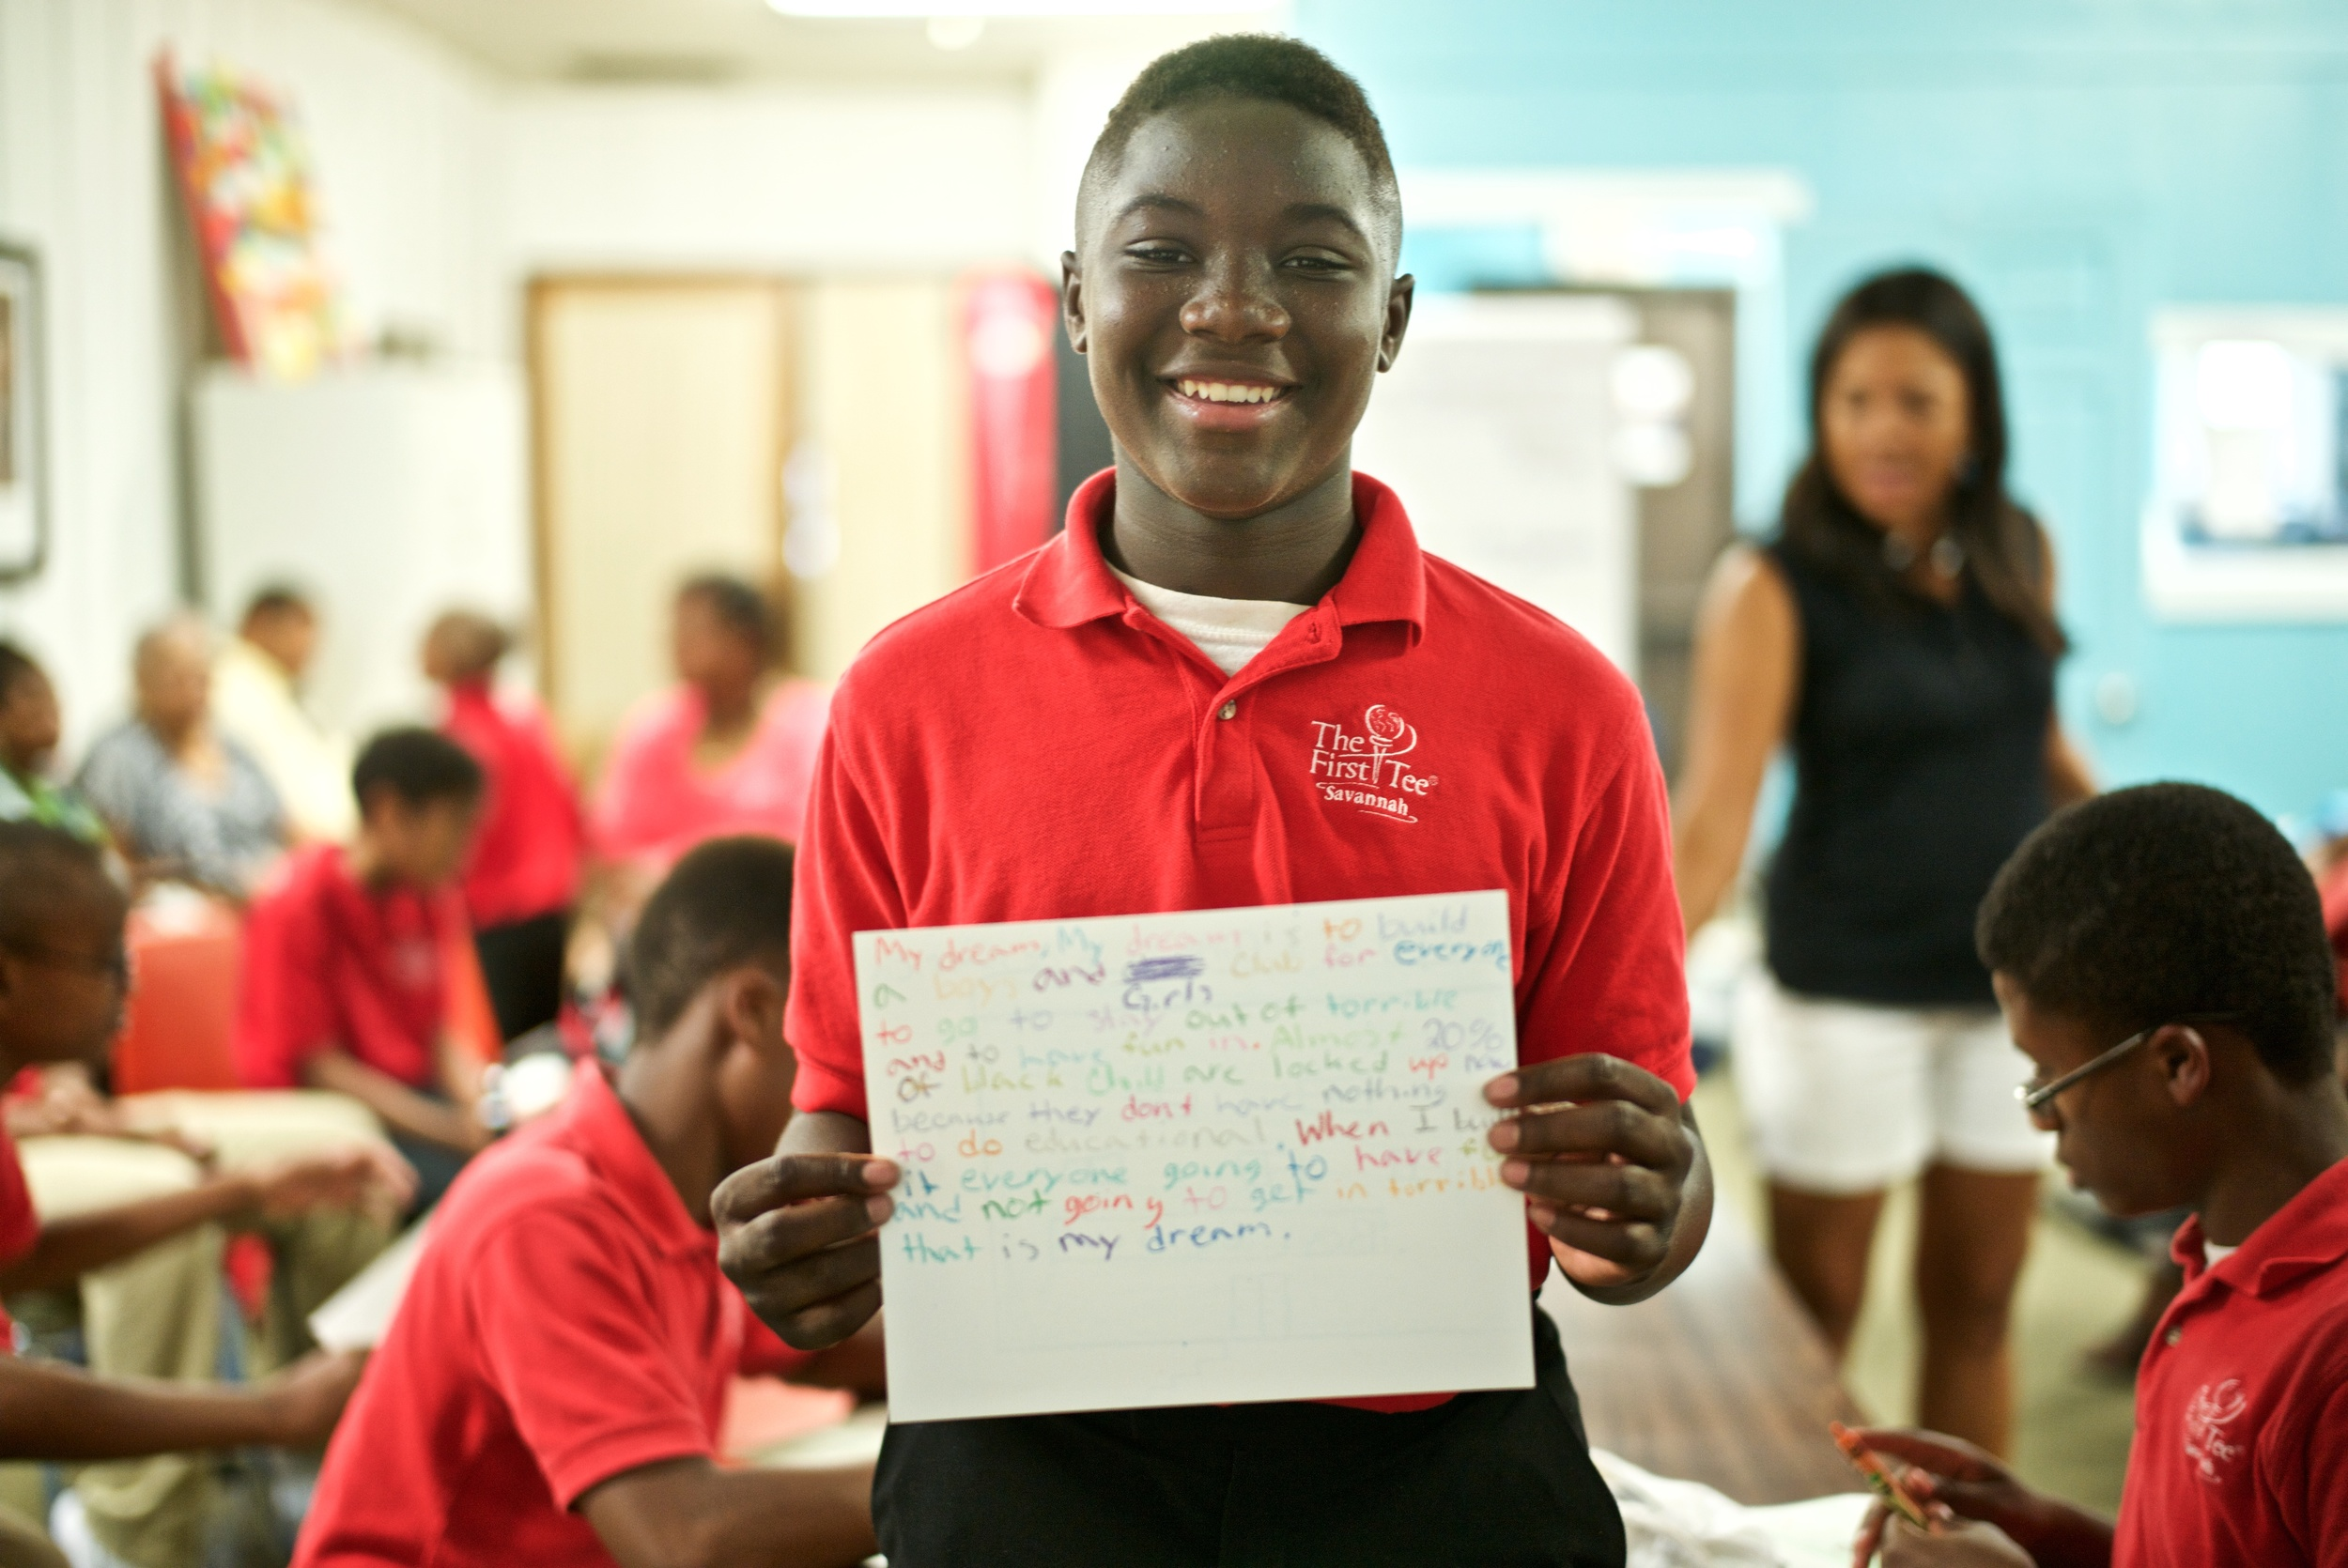 Steven' dream is to build a play house that takes care of children and lets them socialize with their peers in a safe environment. He said an article he read states that twenty present of black children are locked at home during the summer because their parents want them to stay out of trouble.